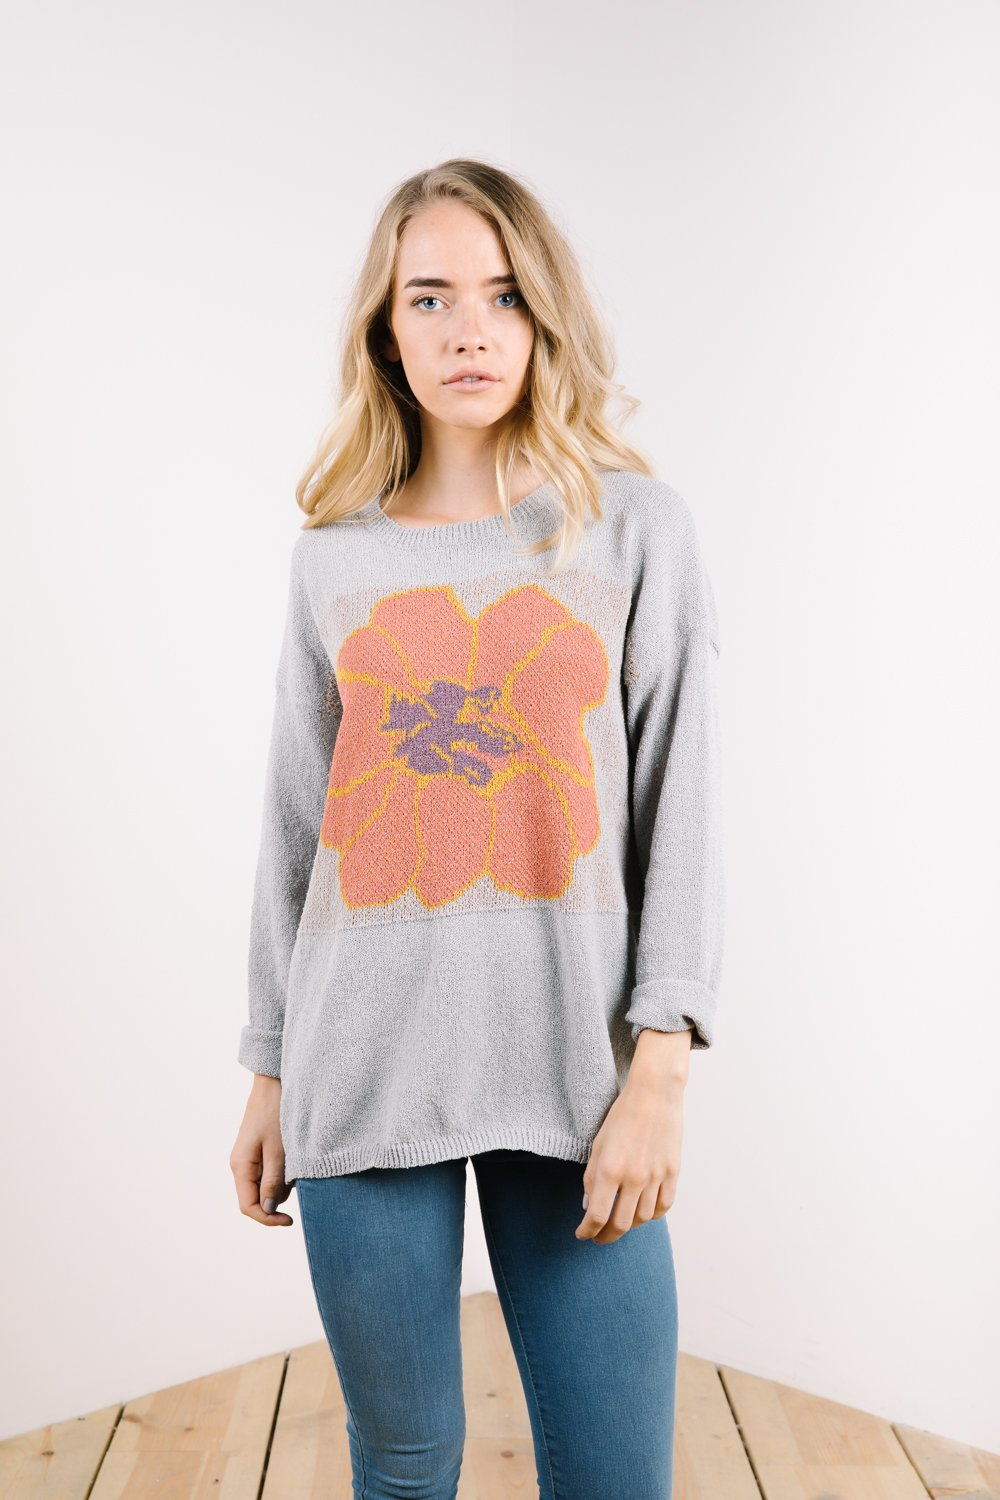 Dawson Knit Flower Sweater: Sale $23.80, Regular $42.00